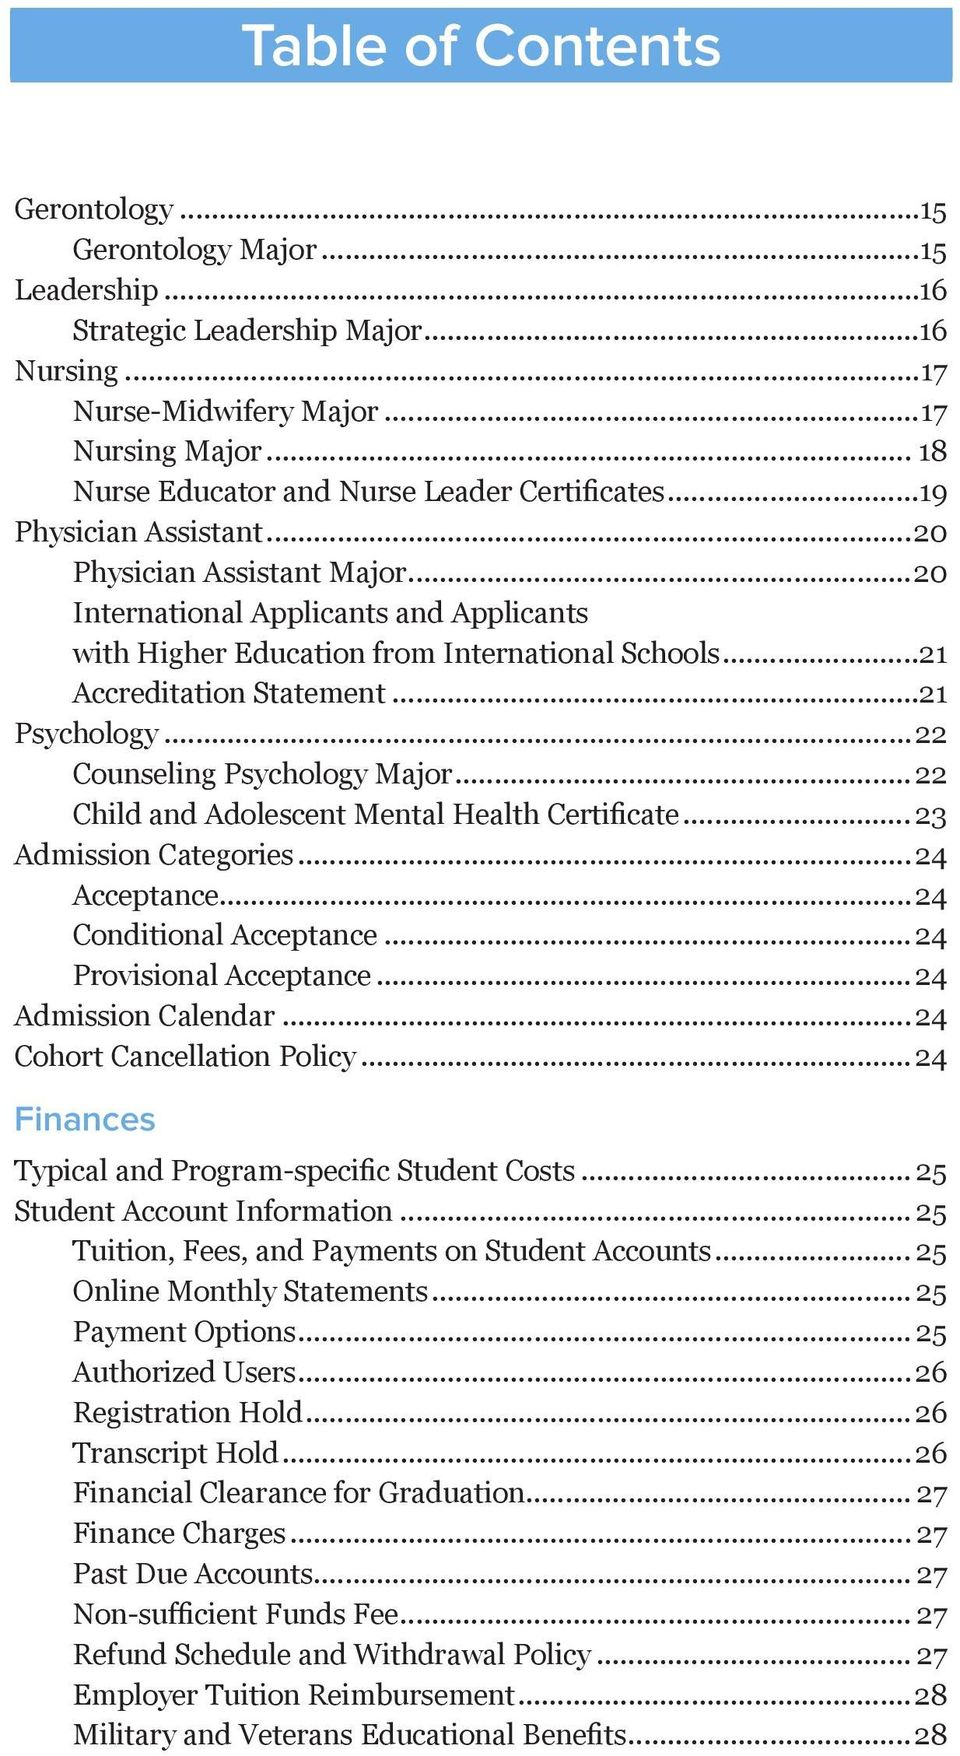 ..21 Accreditation Statement...21 Psychology...22 Counseling Psychology Major... 22 Child and Adolescent Mental Health Certificate... 23 Admission Categories...24 Acceptance...24 Conditional Acceptance.